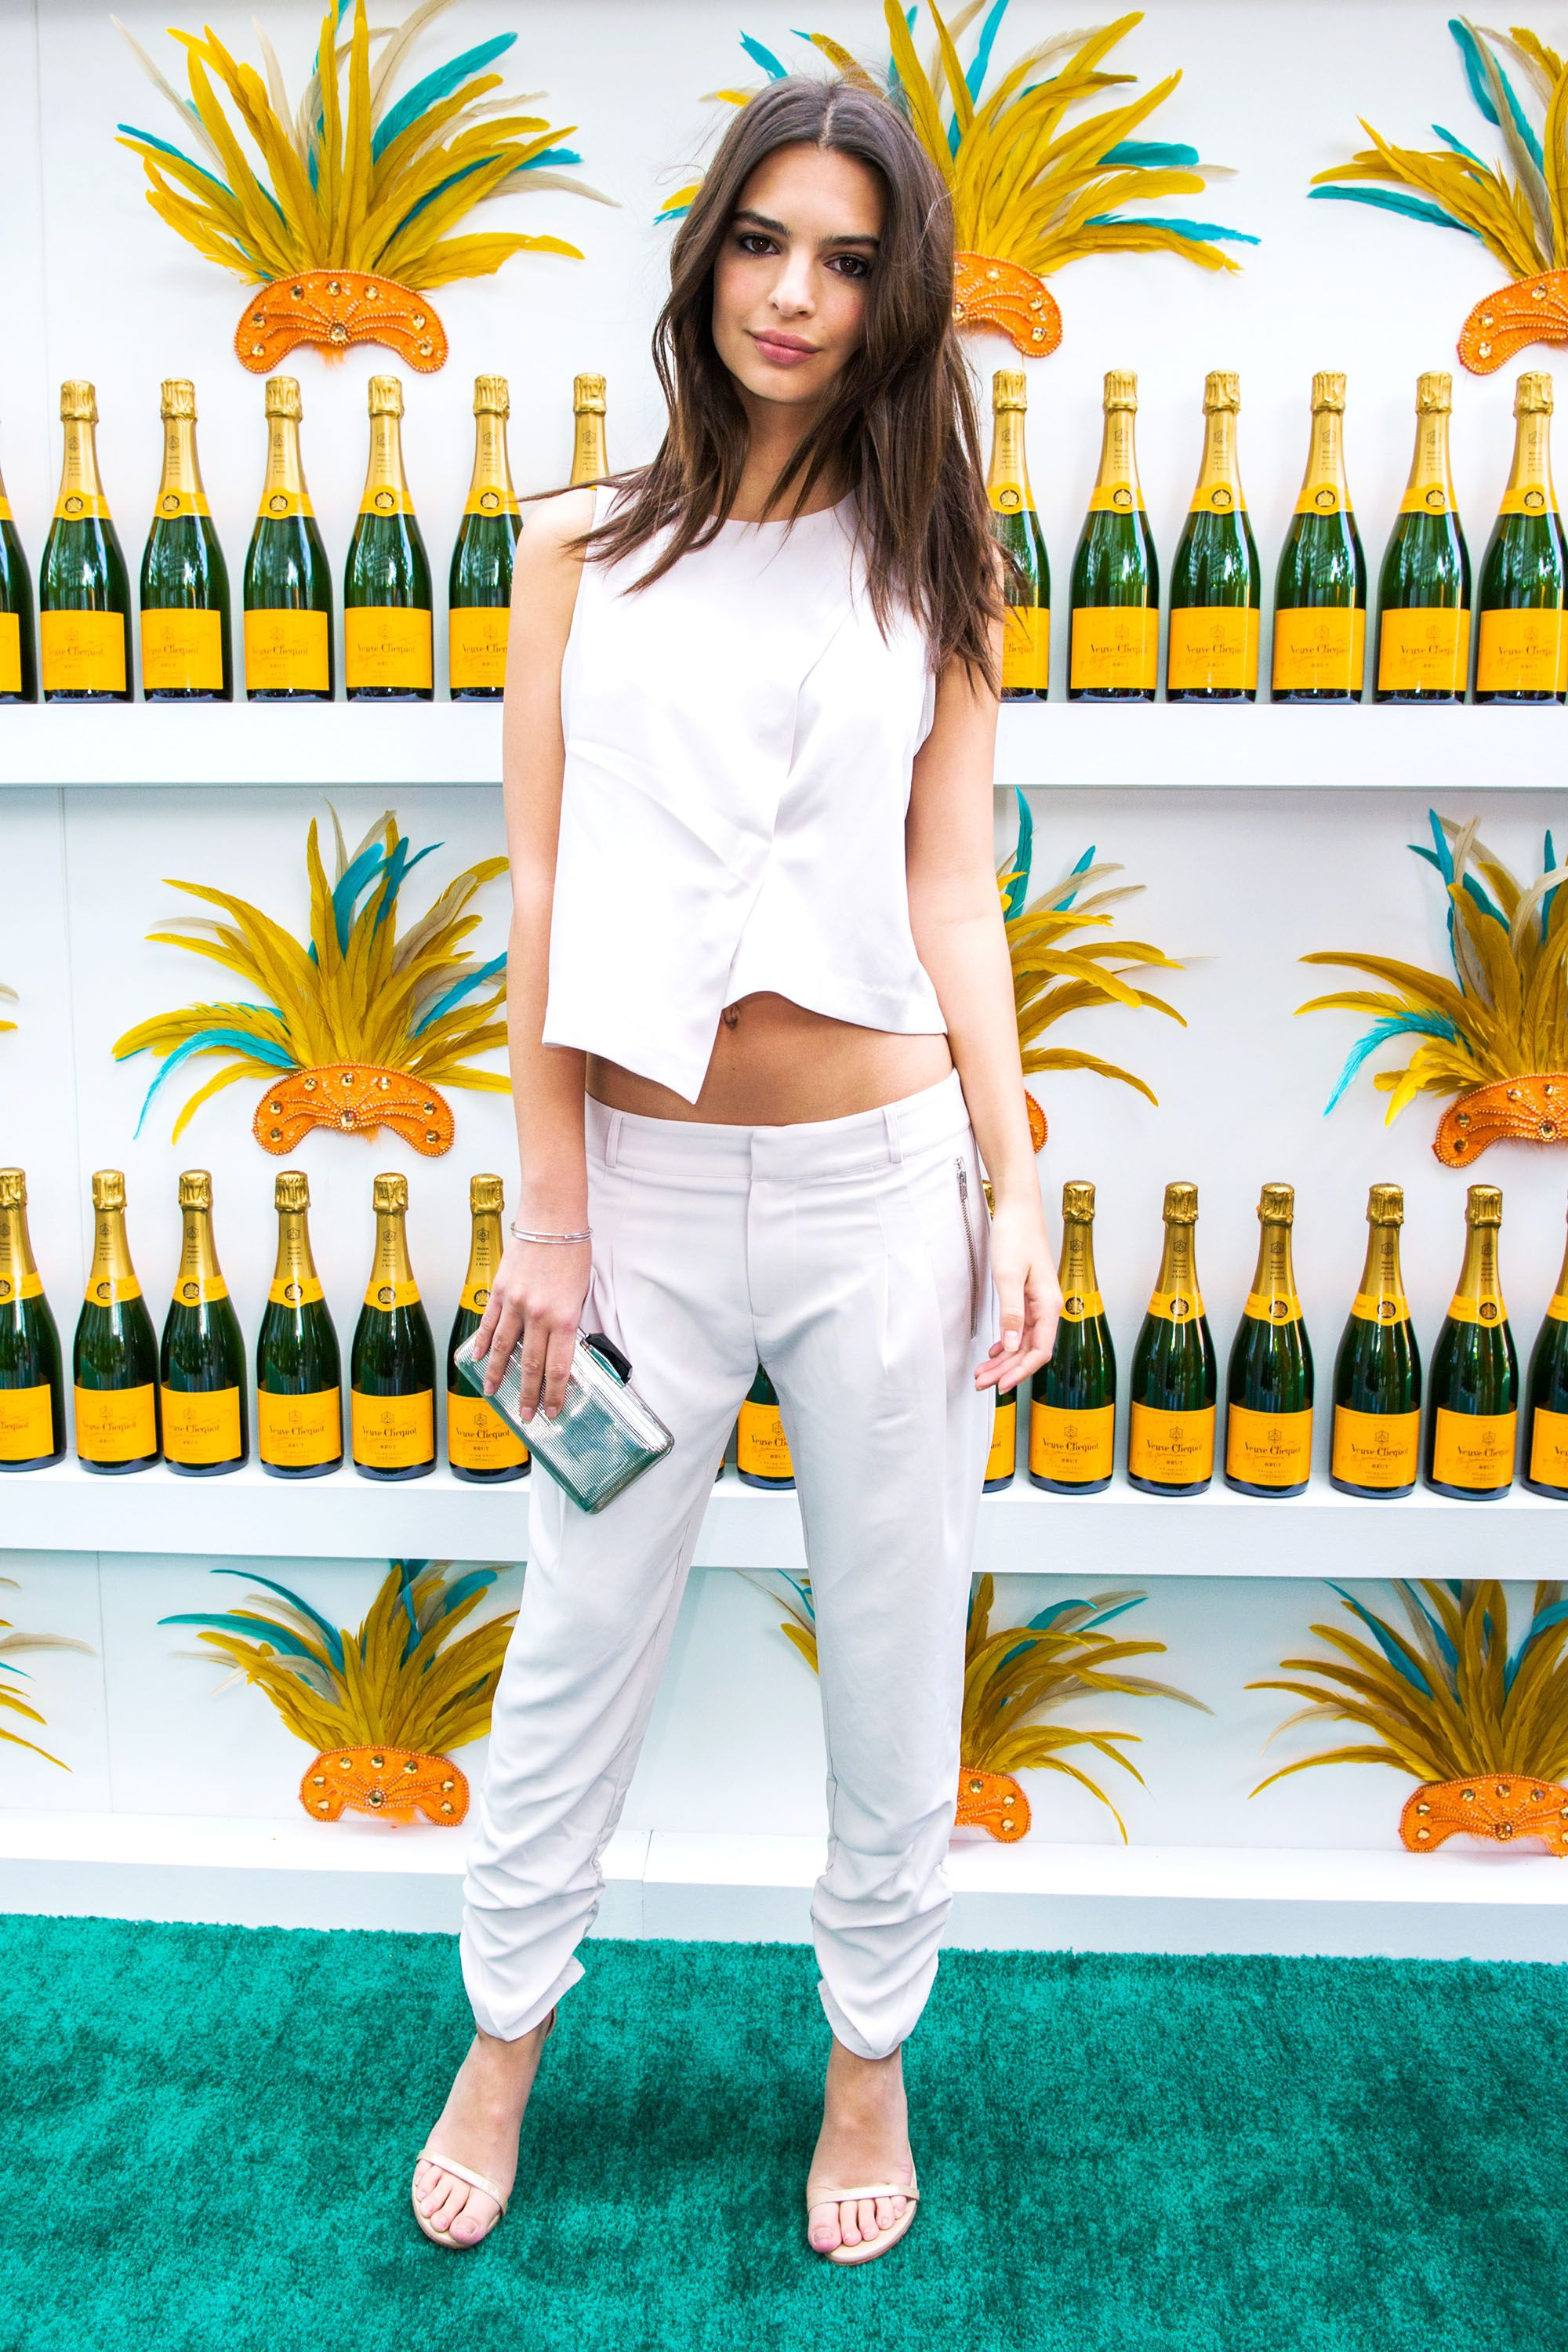 MIAMI BEACH, FL - FEBRUARY 07:  Model Actress Emily Ratajkowski attends Clicquot Carnaval at Thompson Hotel Miami Beach on February 7, 2015 in Miami Beach, Florida.   (Photo by Sergi Alexander/Getty Images)